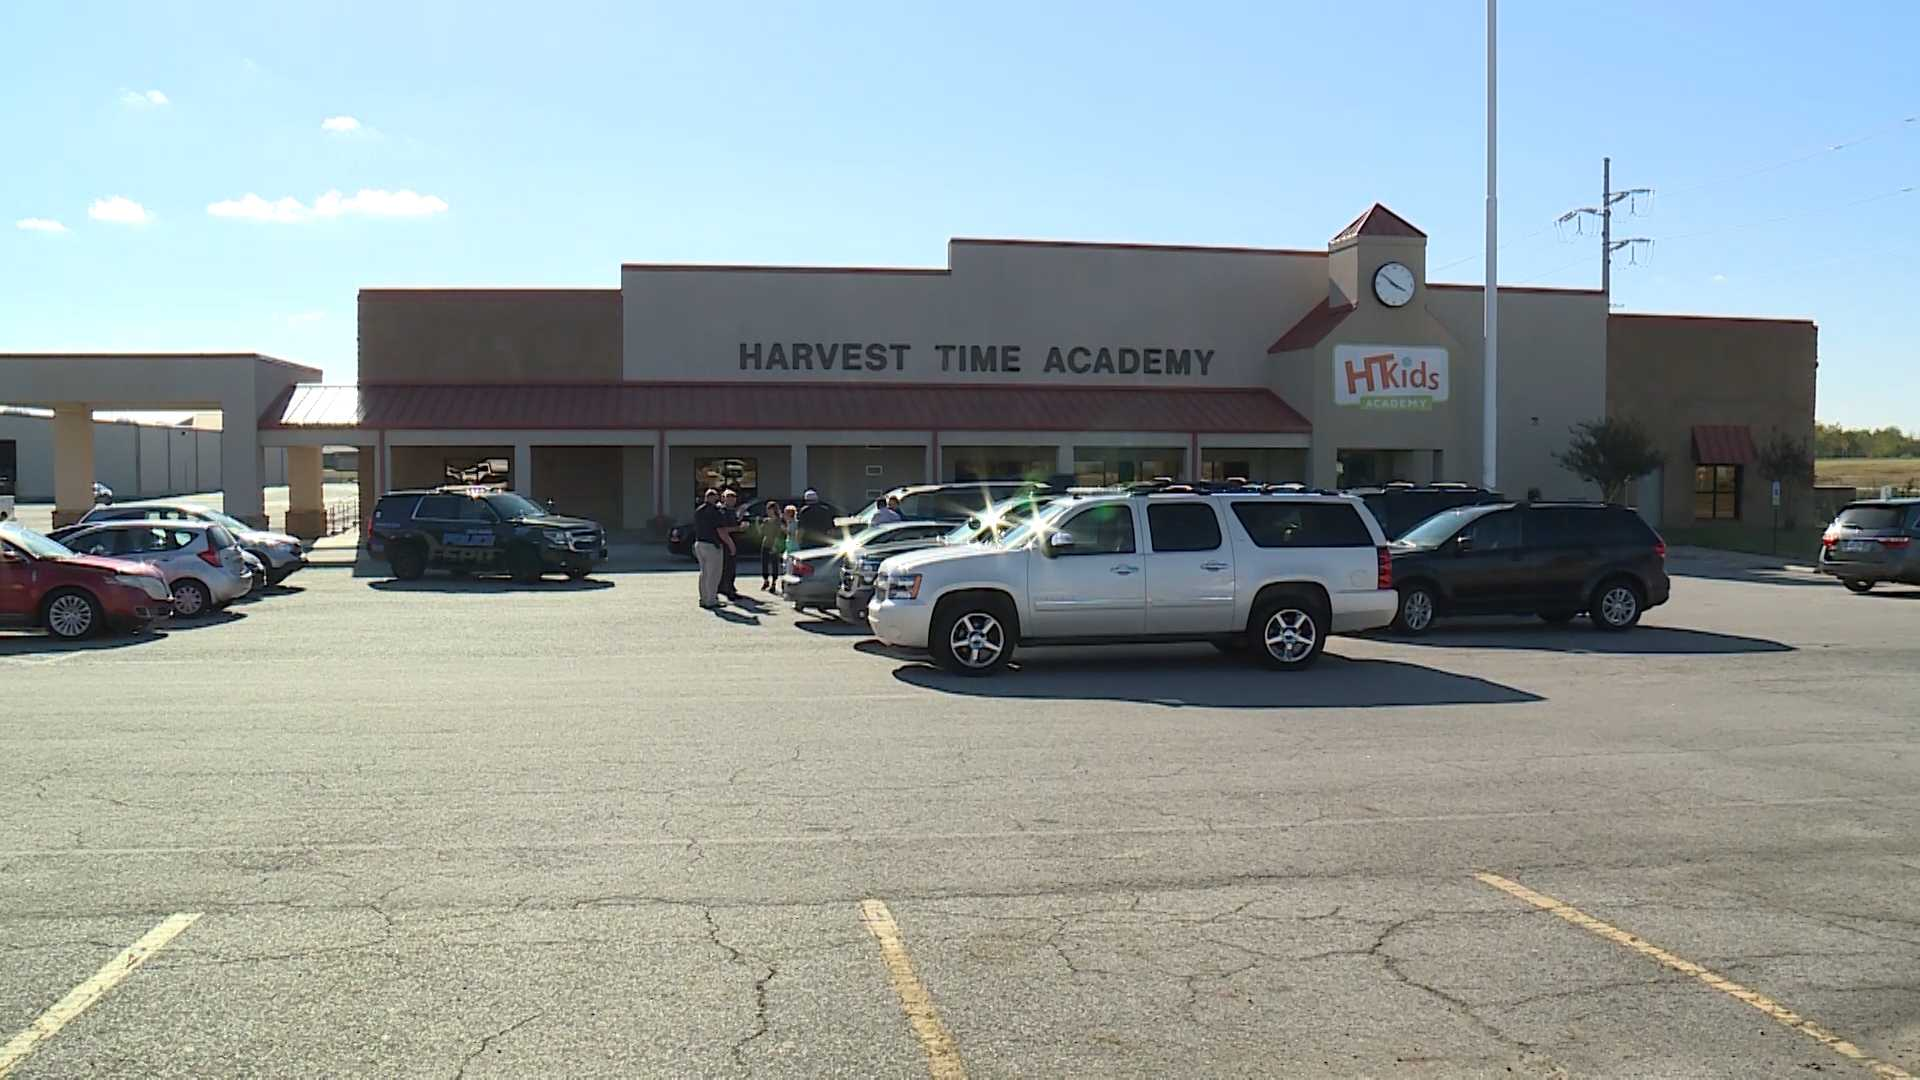 Harvest Time Academy in Fort Smith